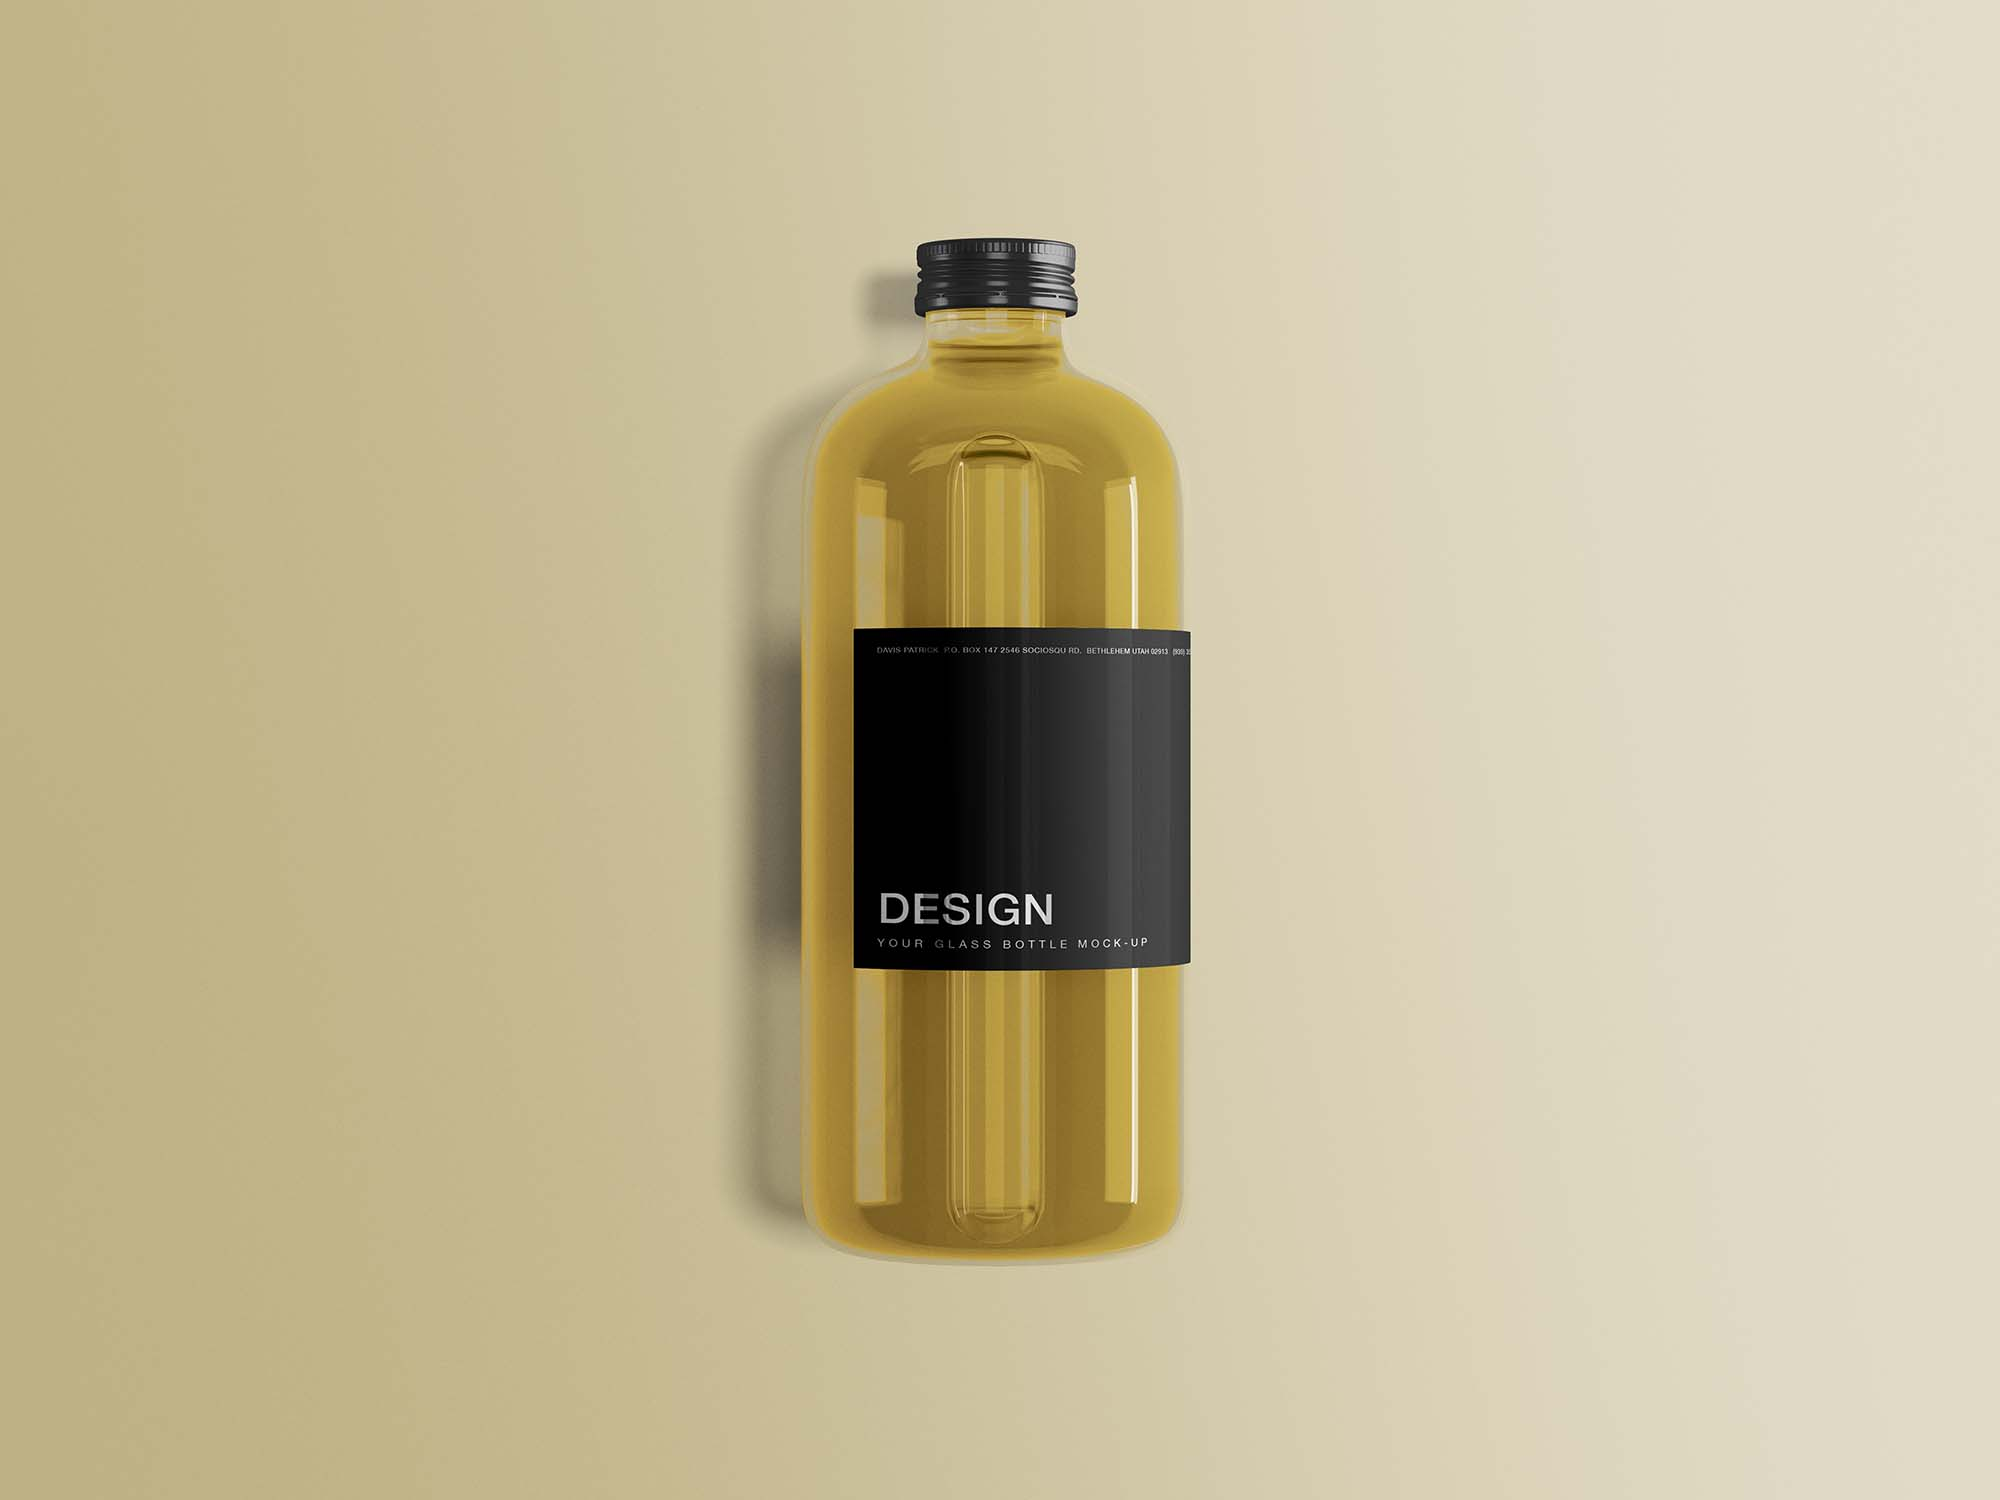 Glass Bottle Mockup 1